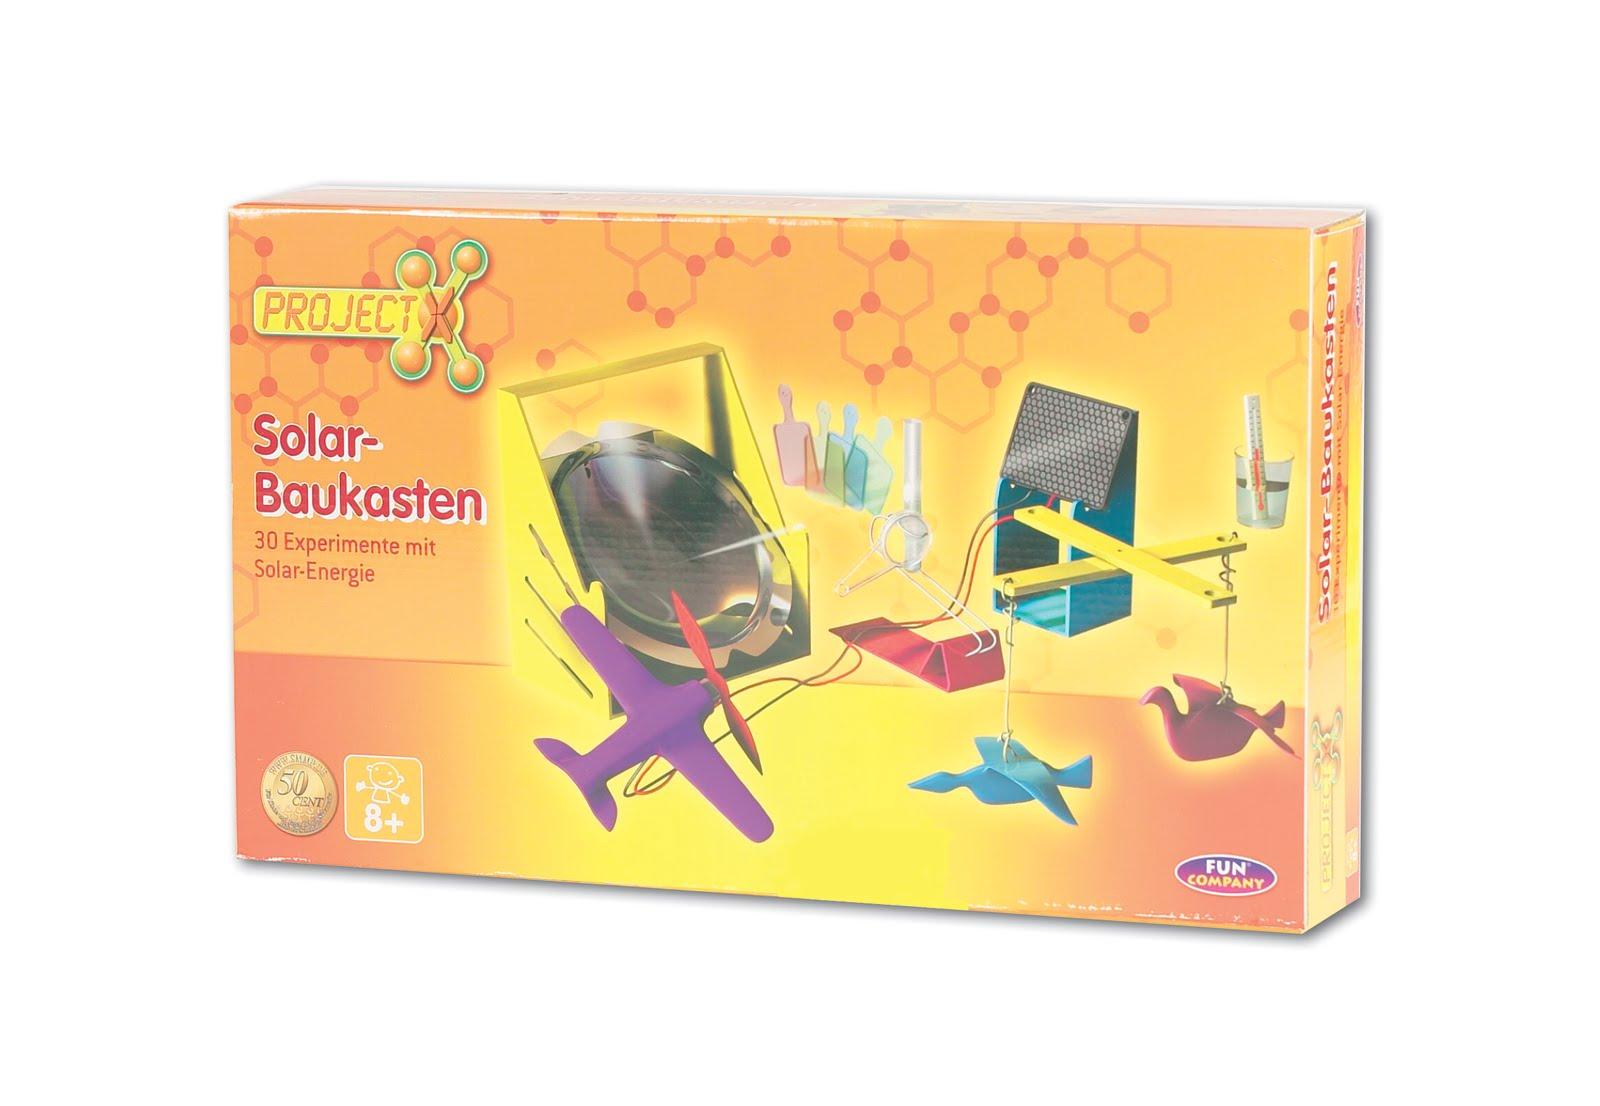 kids and blog neu im shop der fc solarbaukasten 31 experimente mit solarenergie. Black Bedroom Furniture Sets. Home Design Ideas